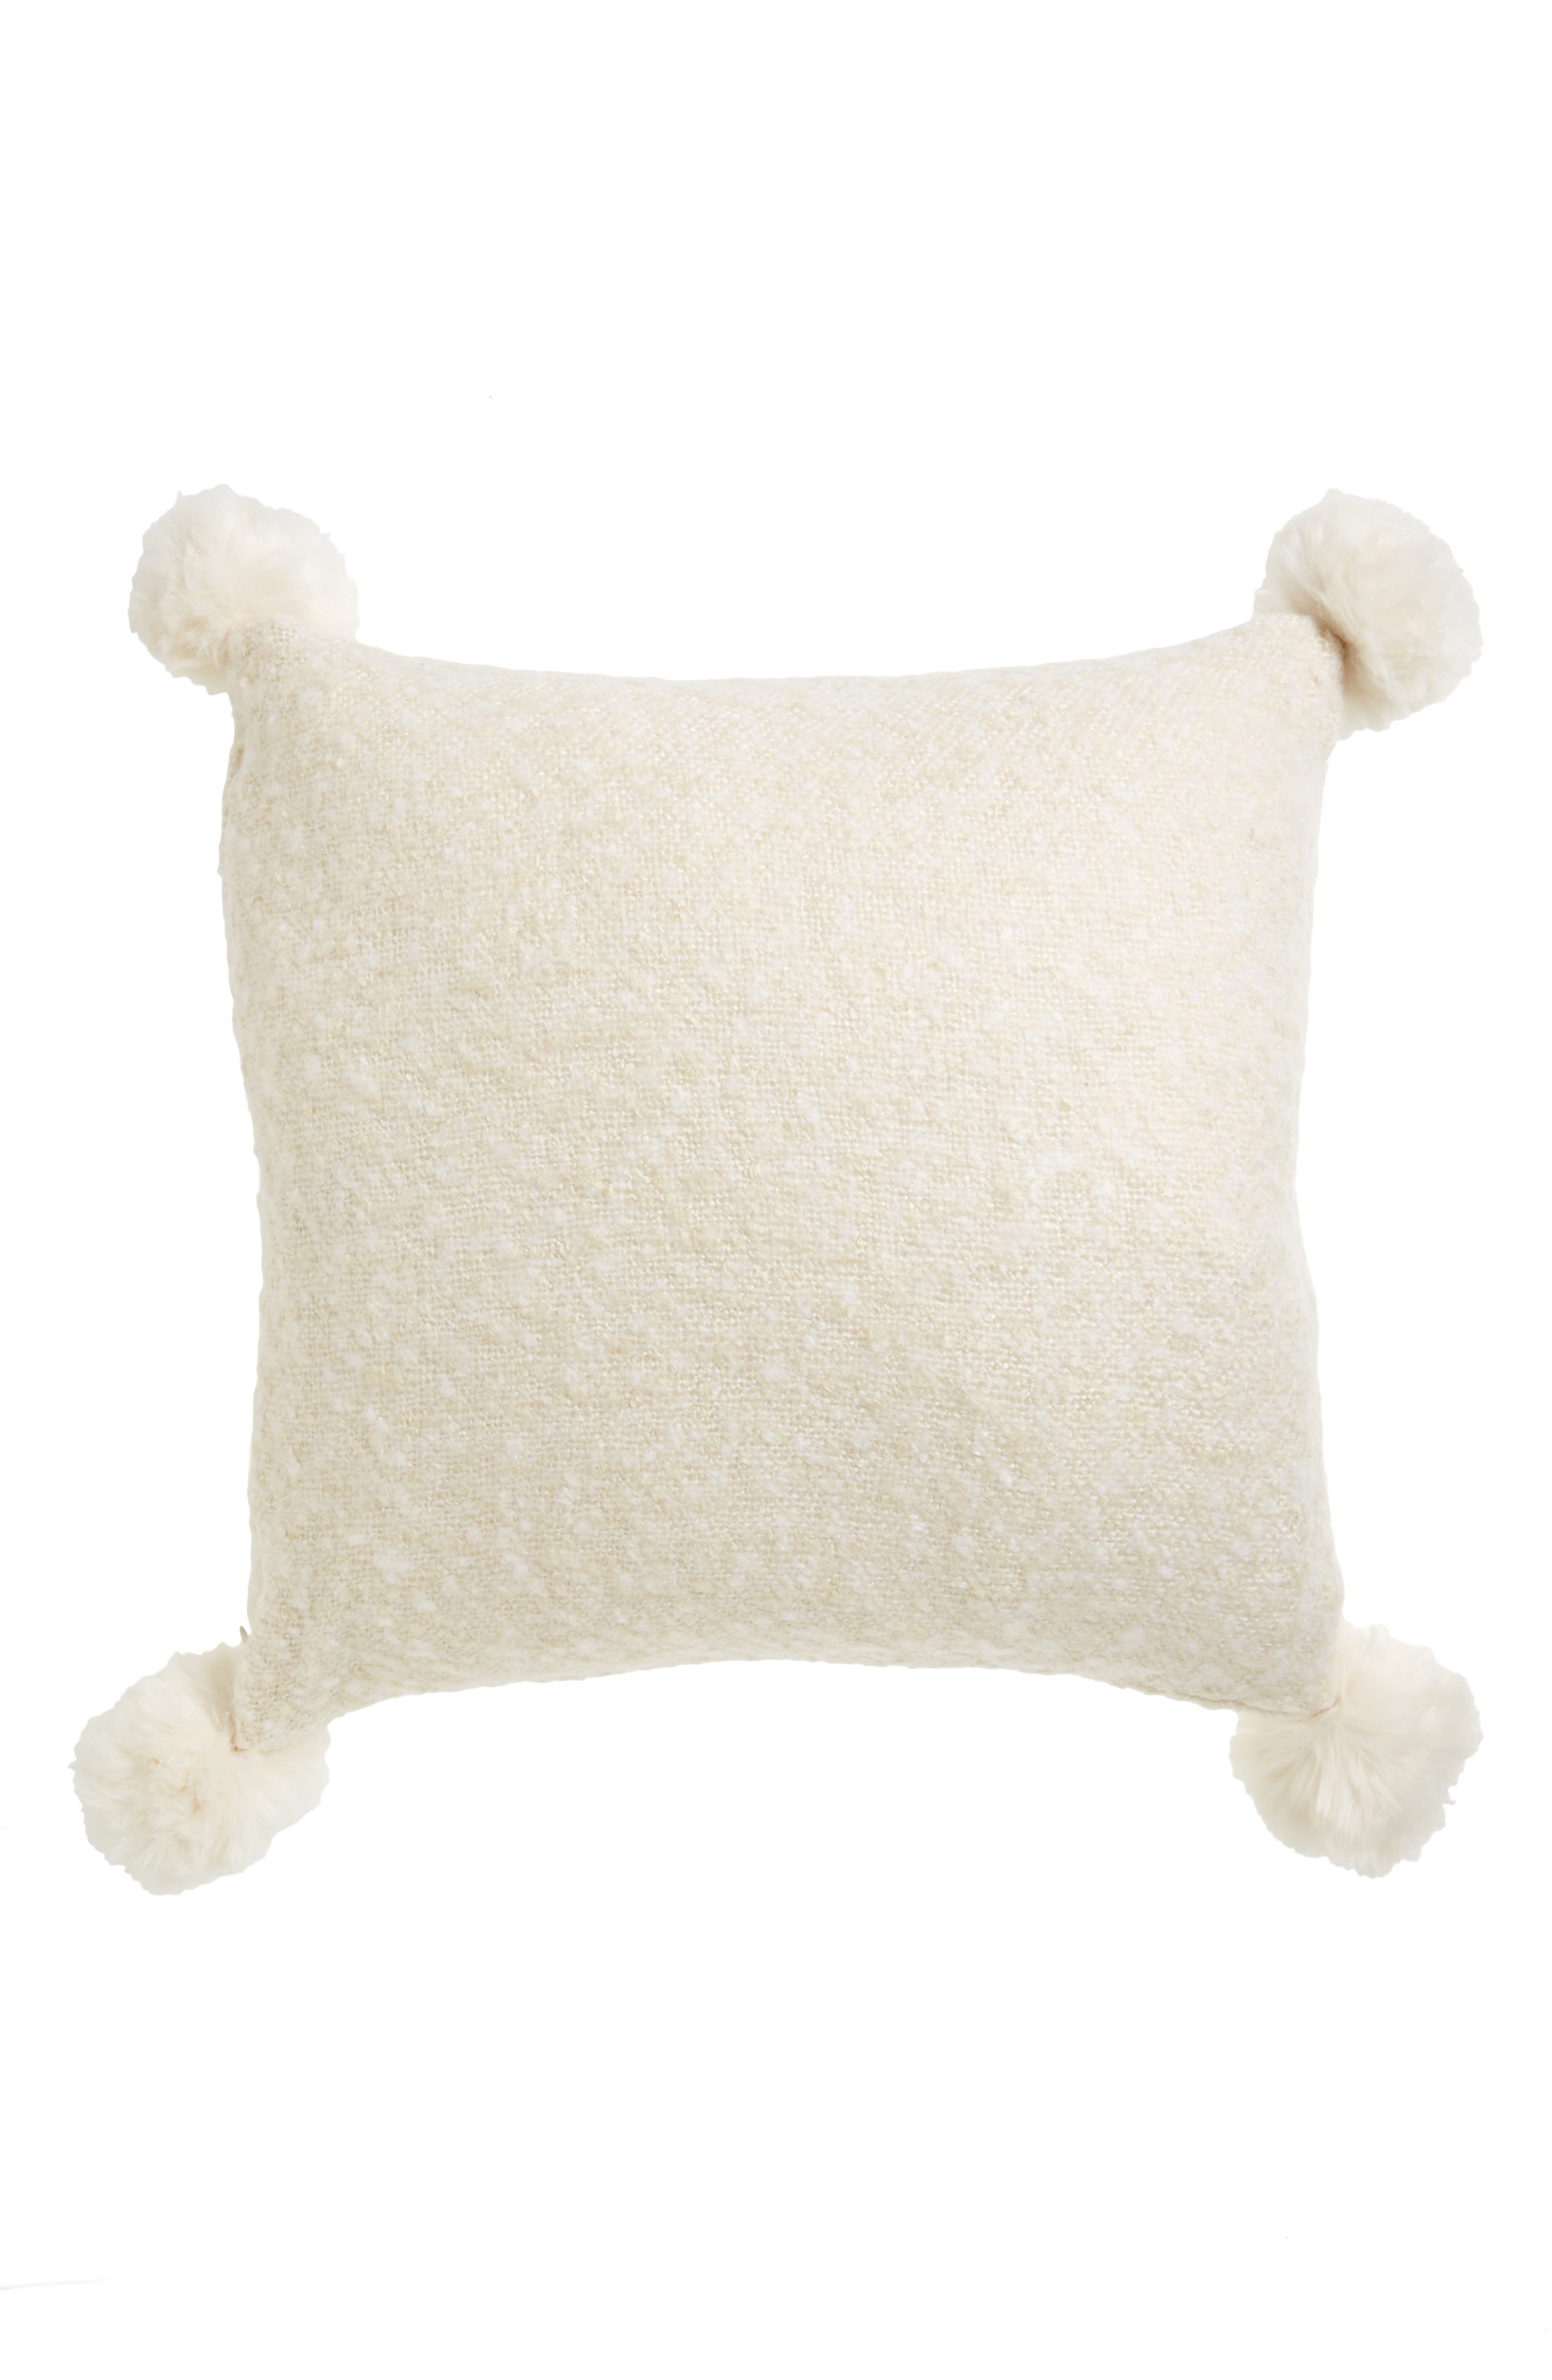 Brushed Accent Pillow with Pompoms,                             Main thumbnail 1, color,                             900